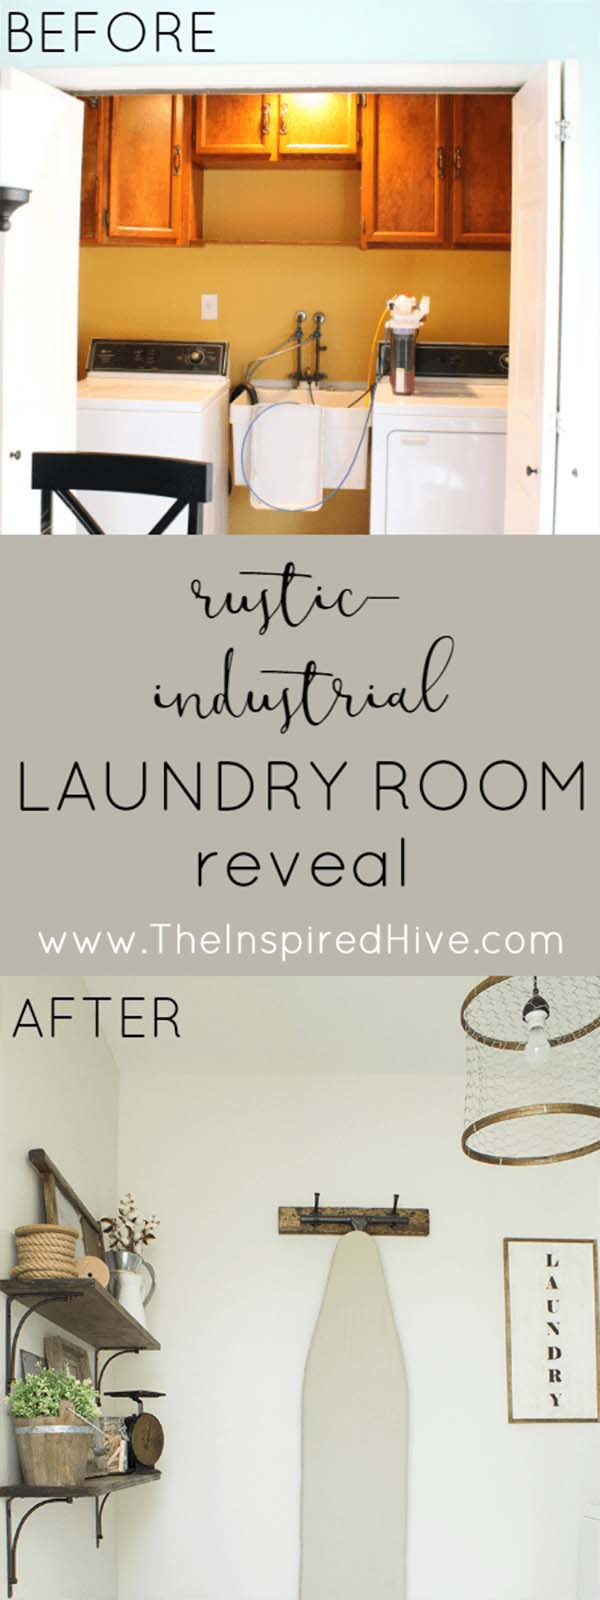 Drab and Dated to Fresh Farmhouse Look #laundryroom #makeover #decorhomeideas